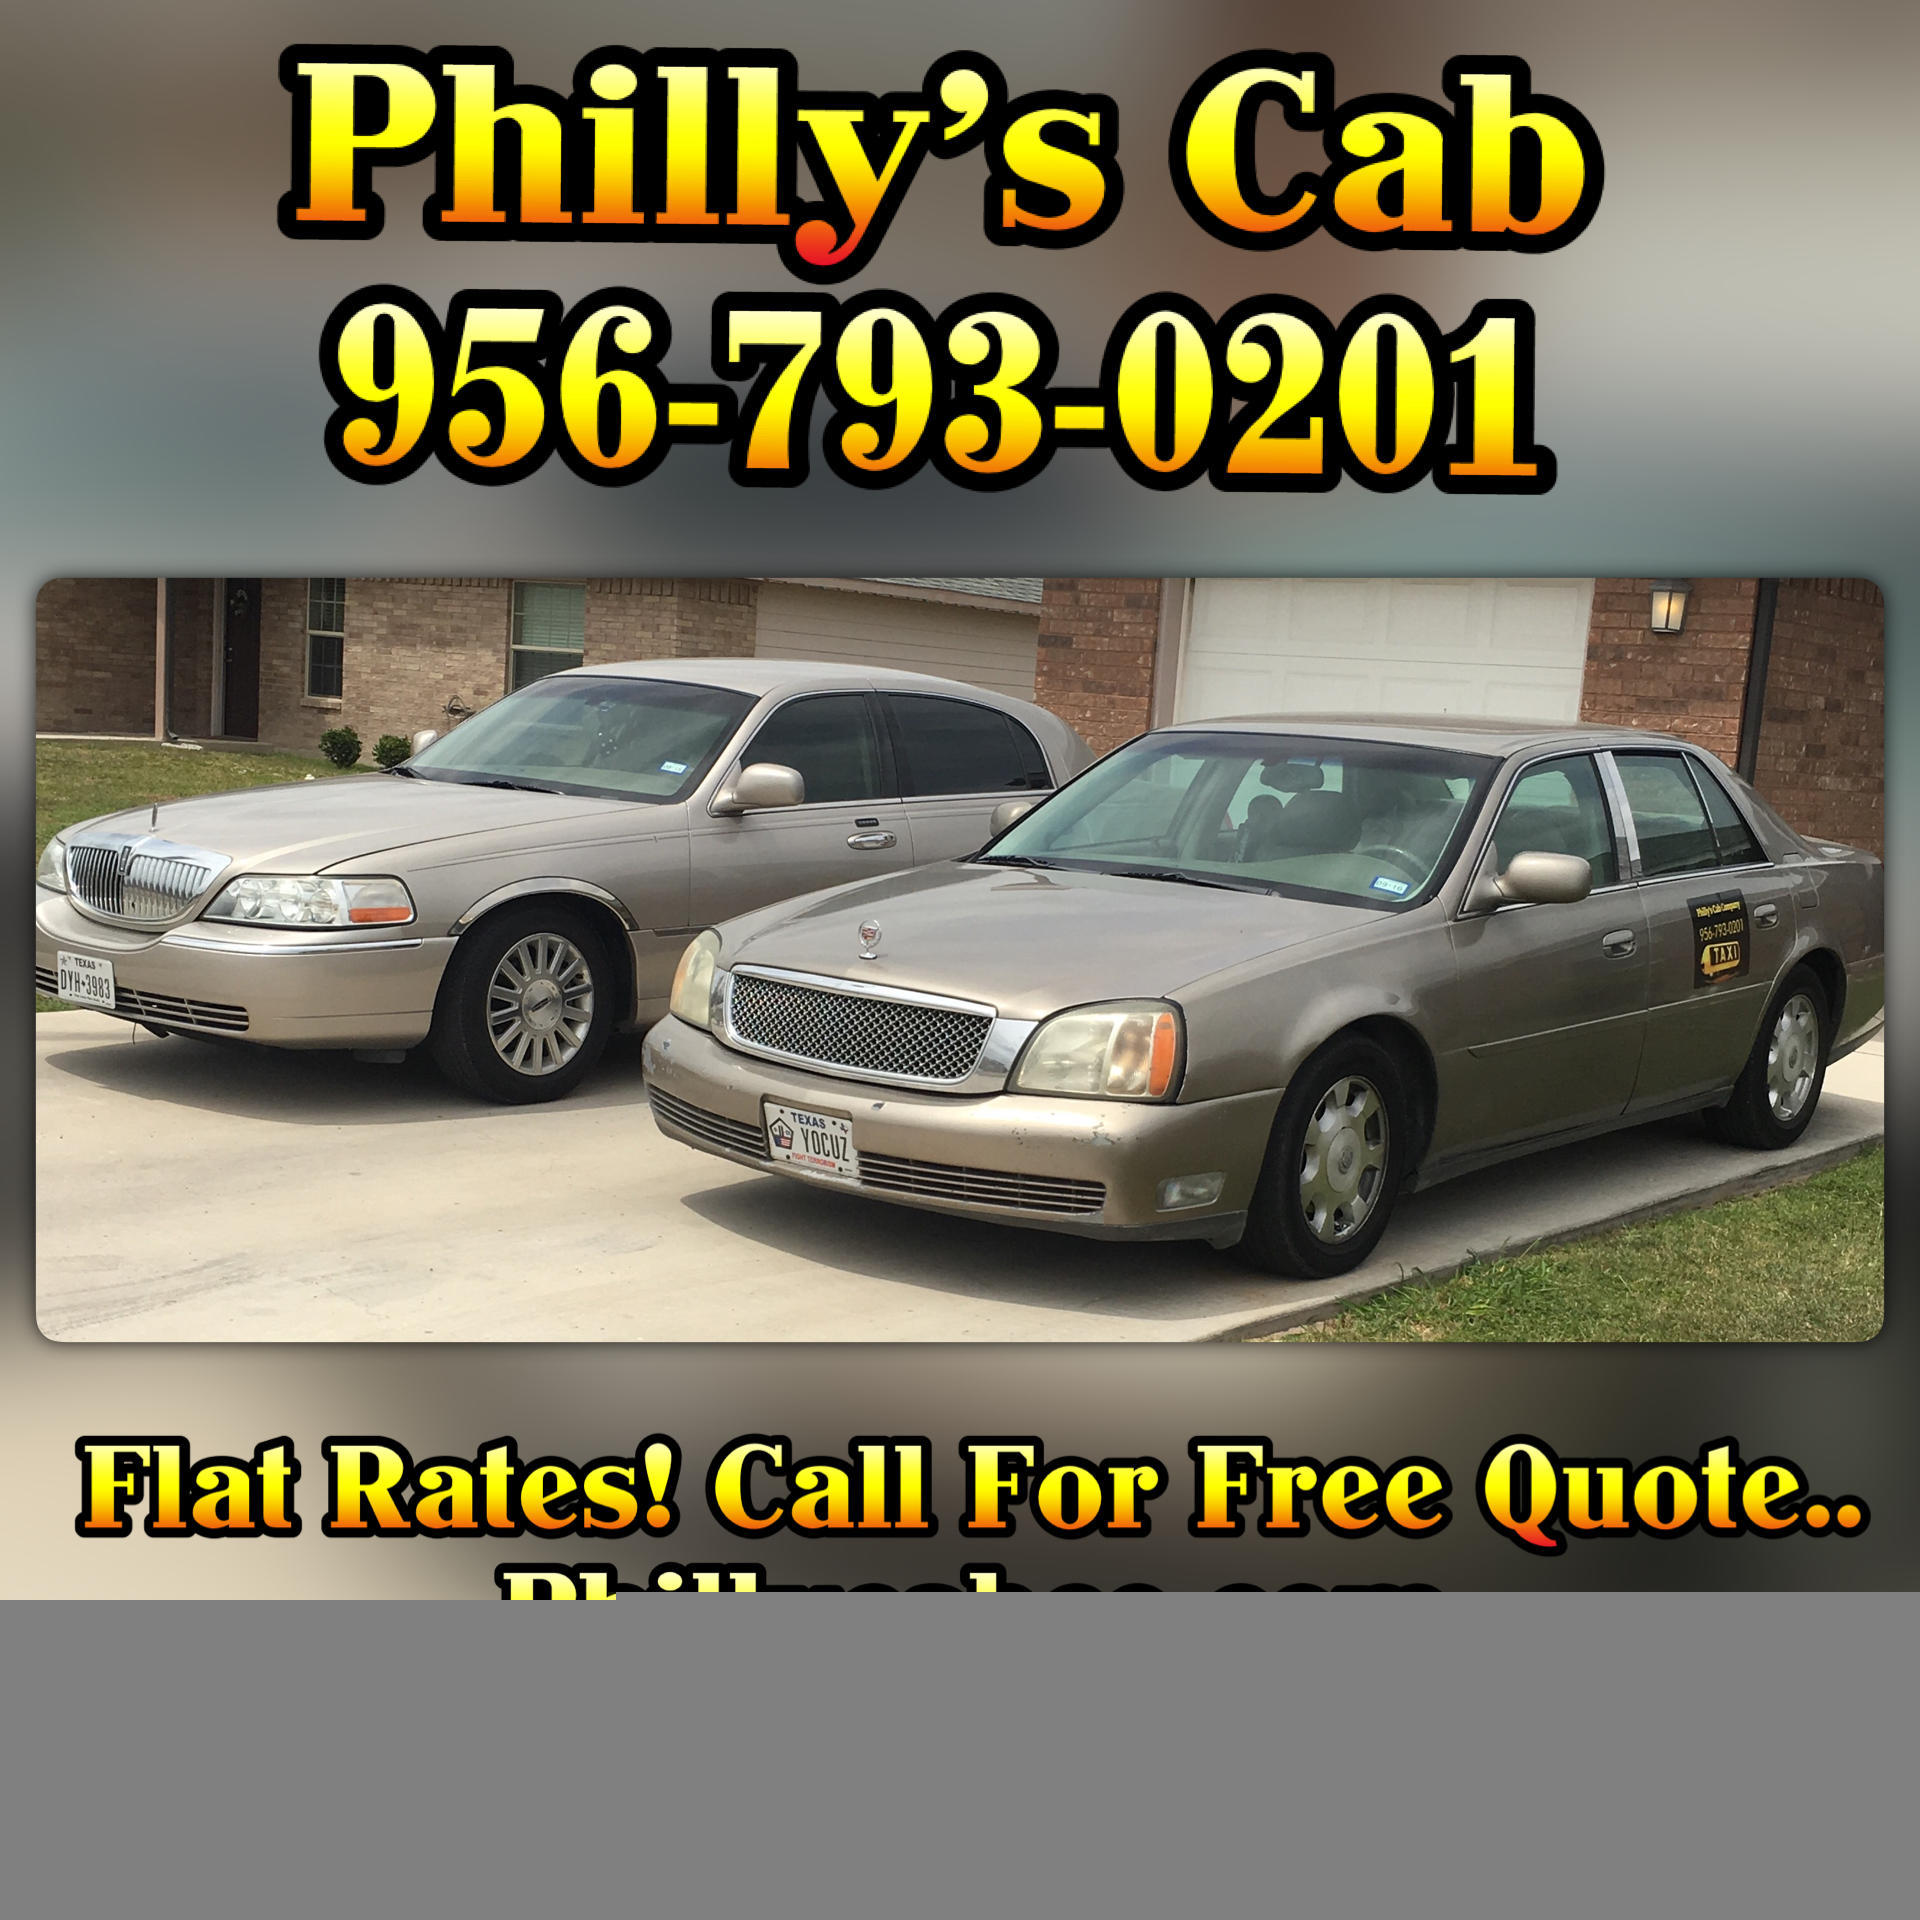 Philly's Cab Company